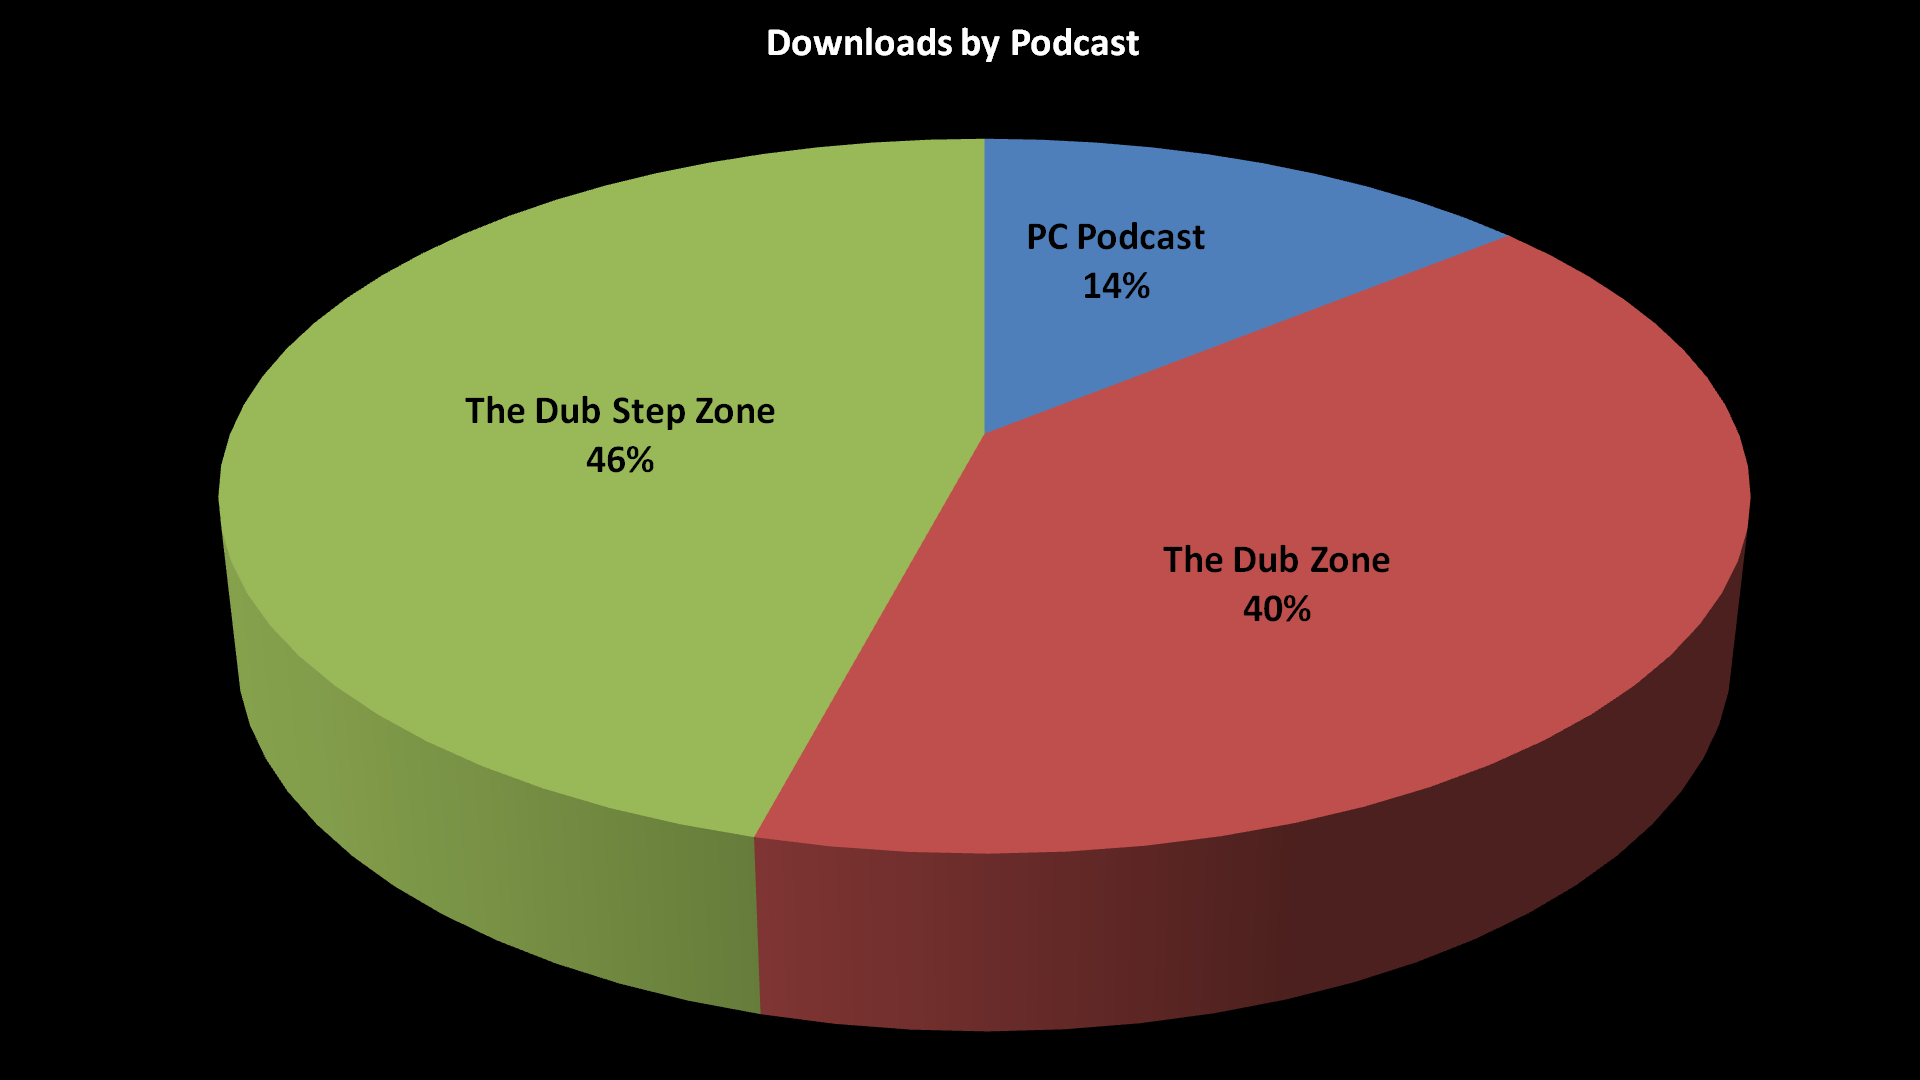 Share of Podcast Downloads